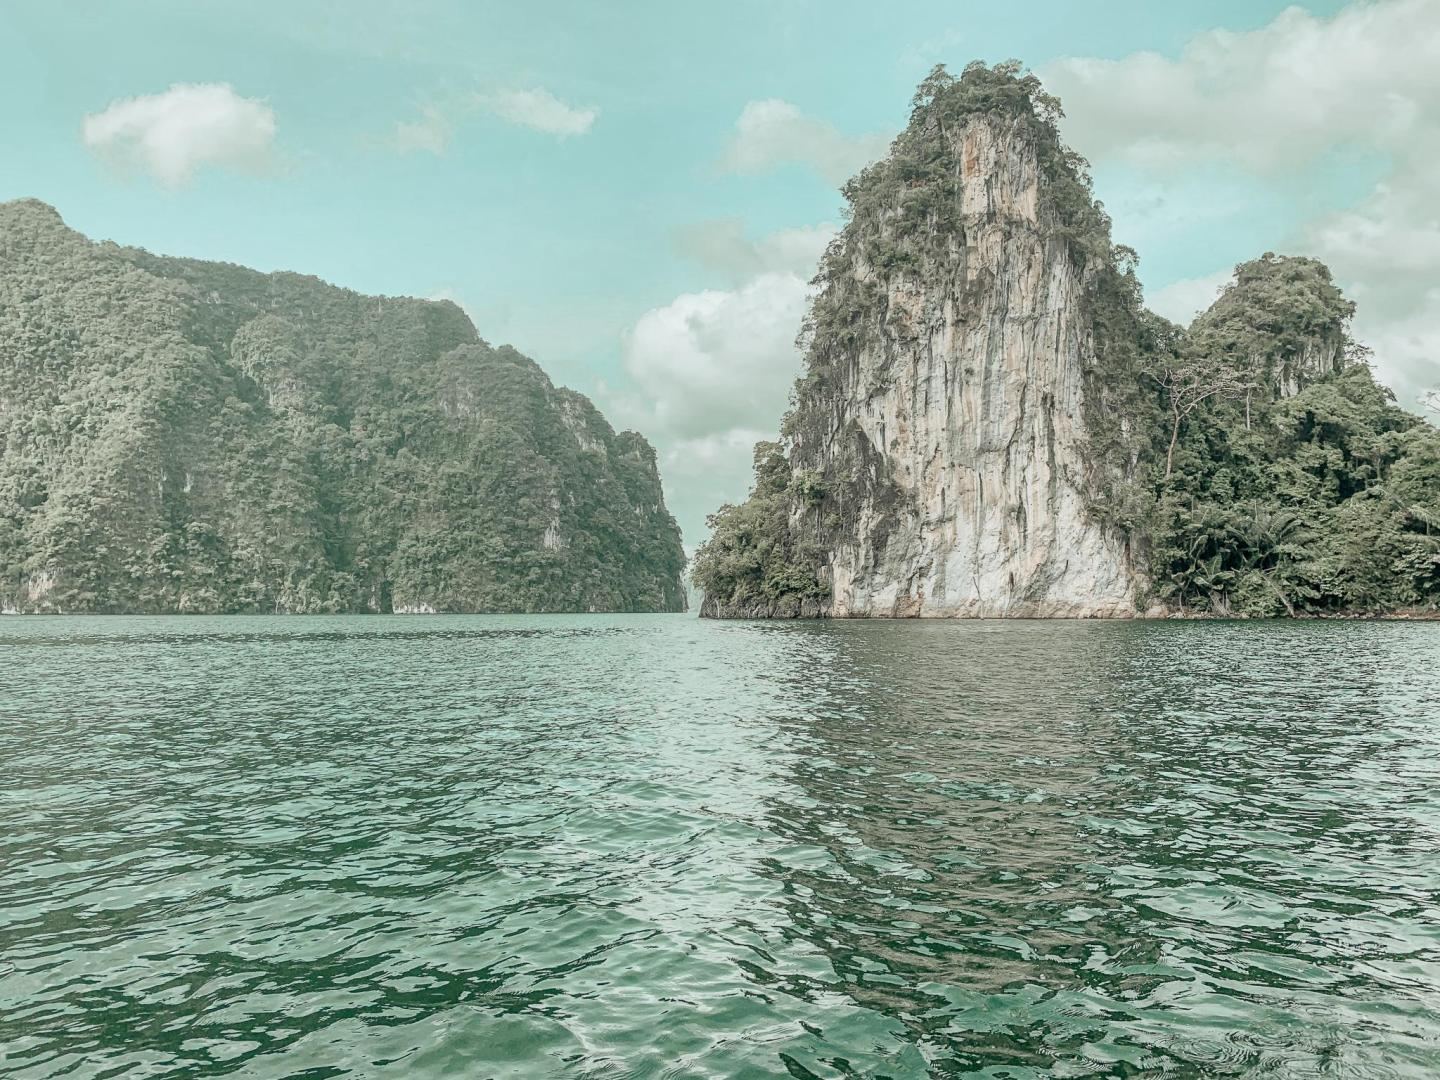 Clear blue skies and waters at Cheow Lan Lake in Thailand, the horizon is littered with limestone cliffs and islands that both fill and surround the lake, these are adorned with rain forest trees